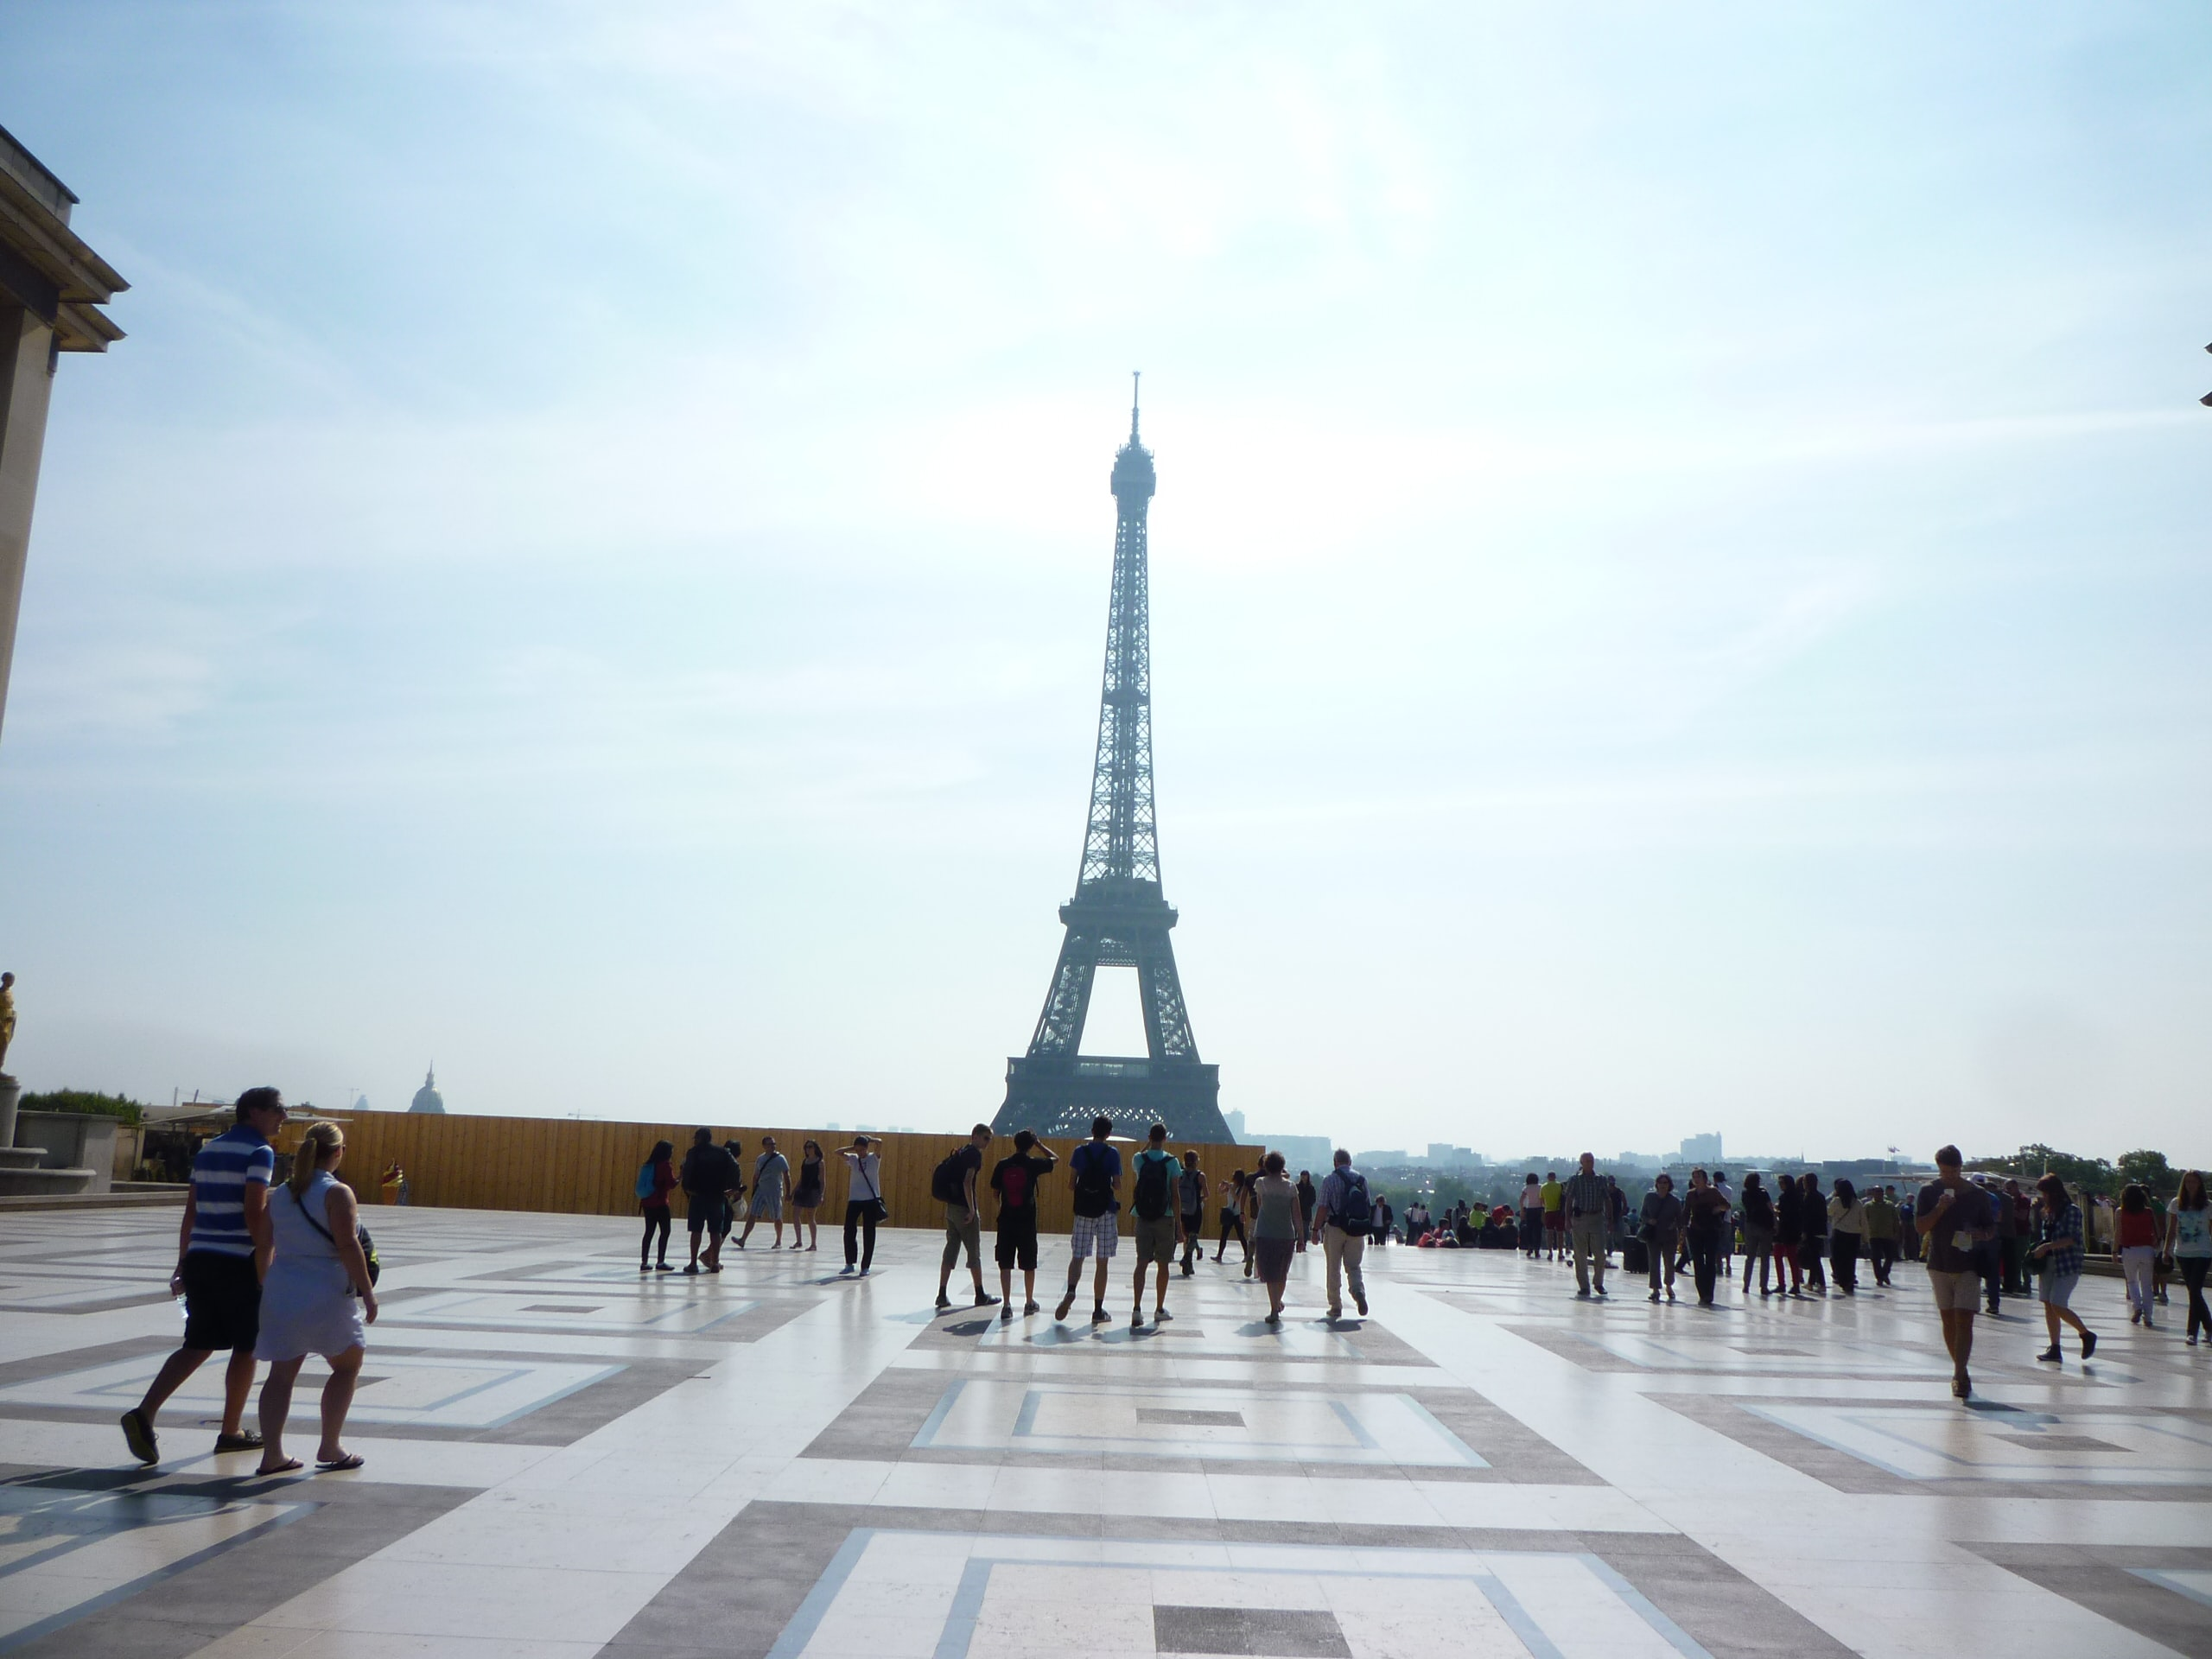 An architectural shot of Eiffel Tower from the Trocadéro square